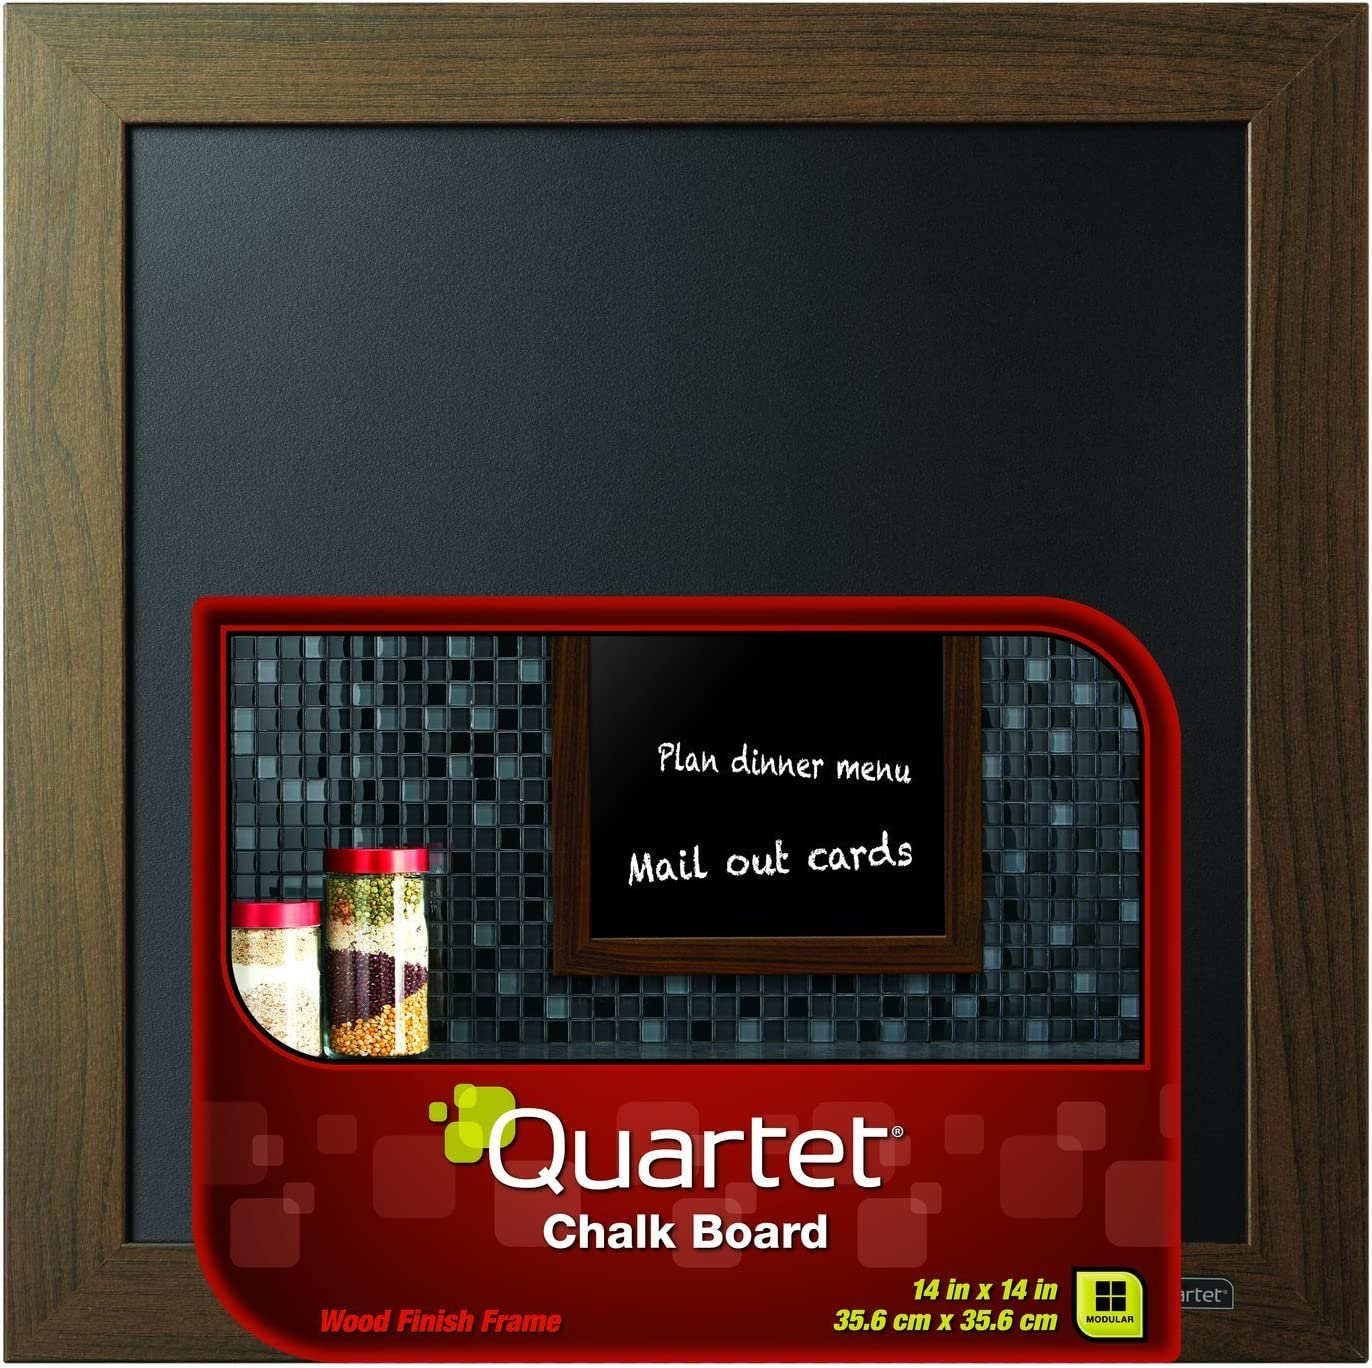 "Quartet Chalkboard, 14"" x 14"" Chalk Board, White Wood Finish Frame (90006) : Office Products"